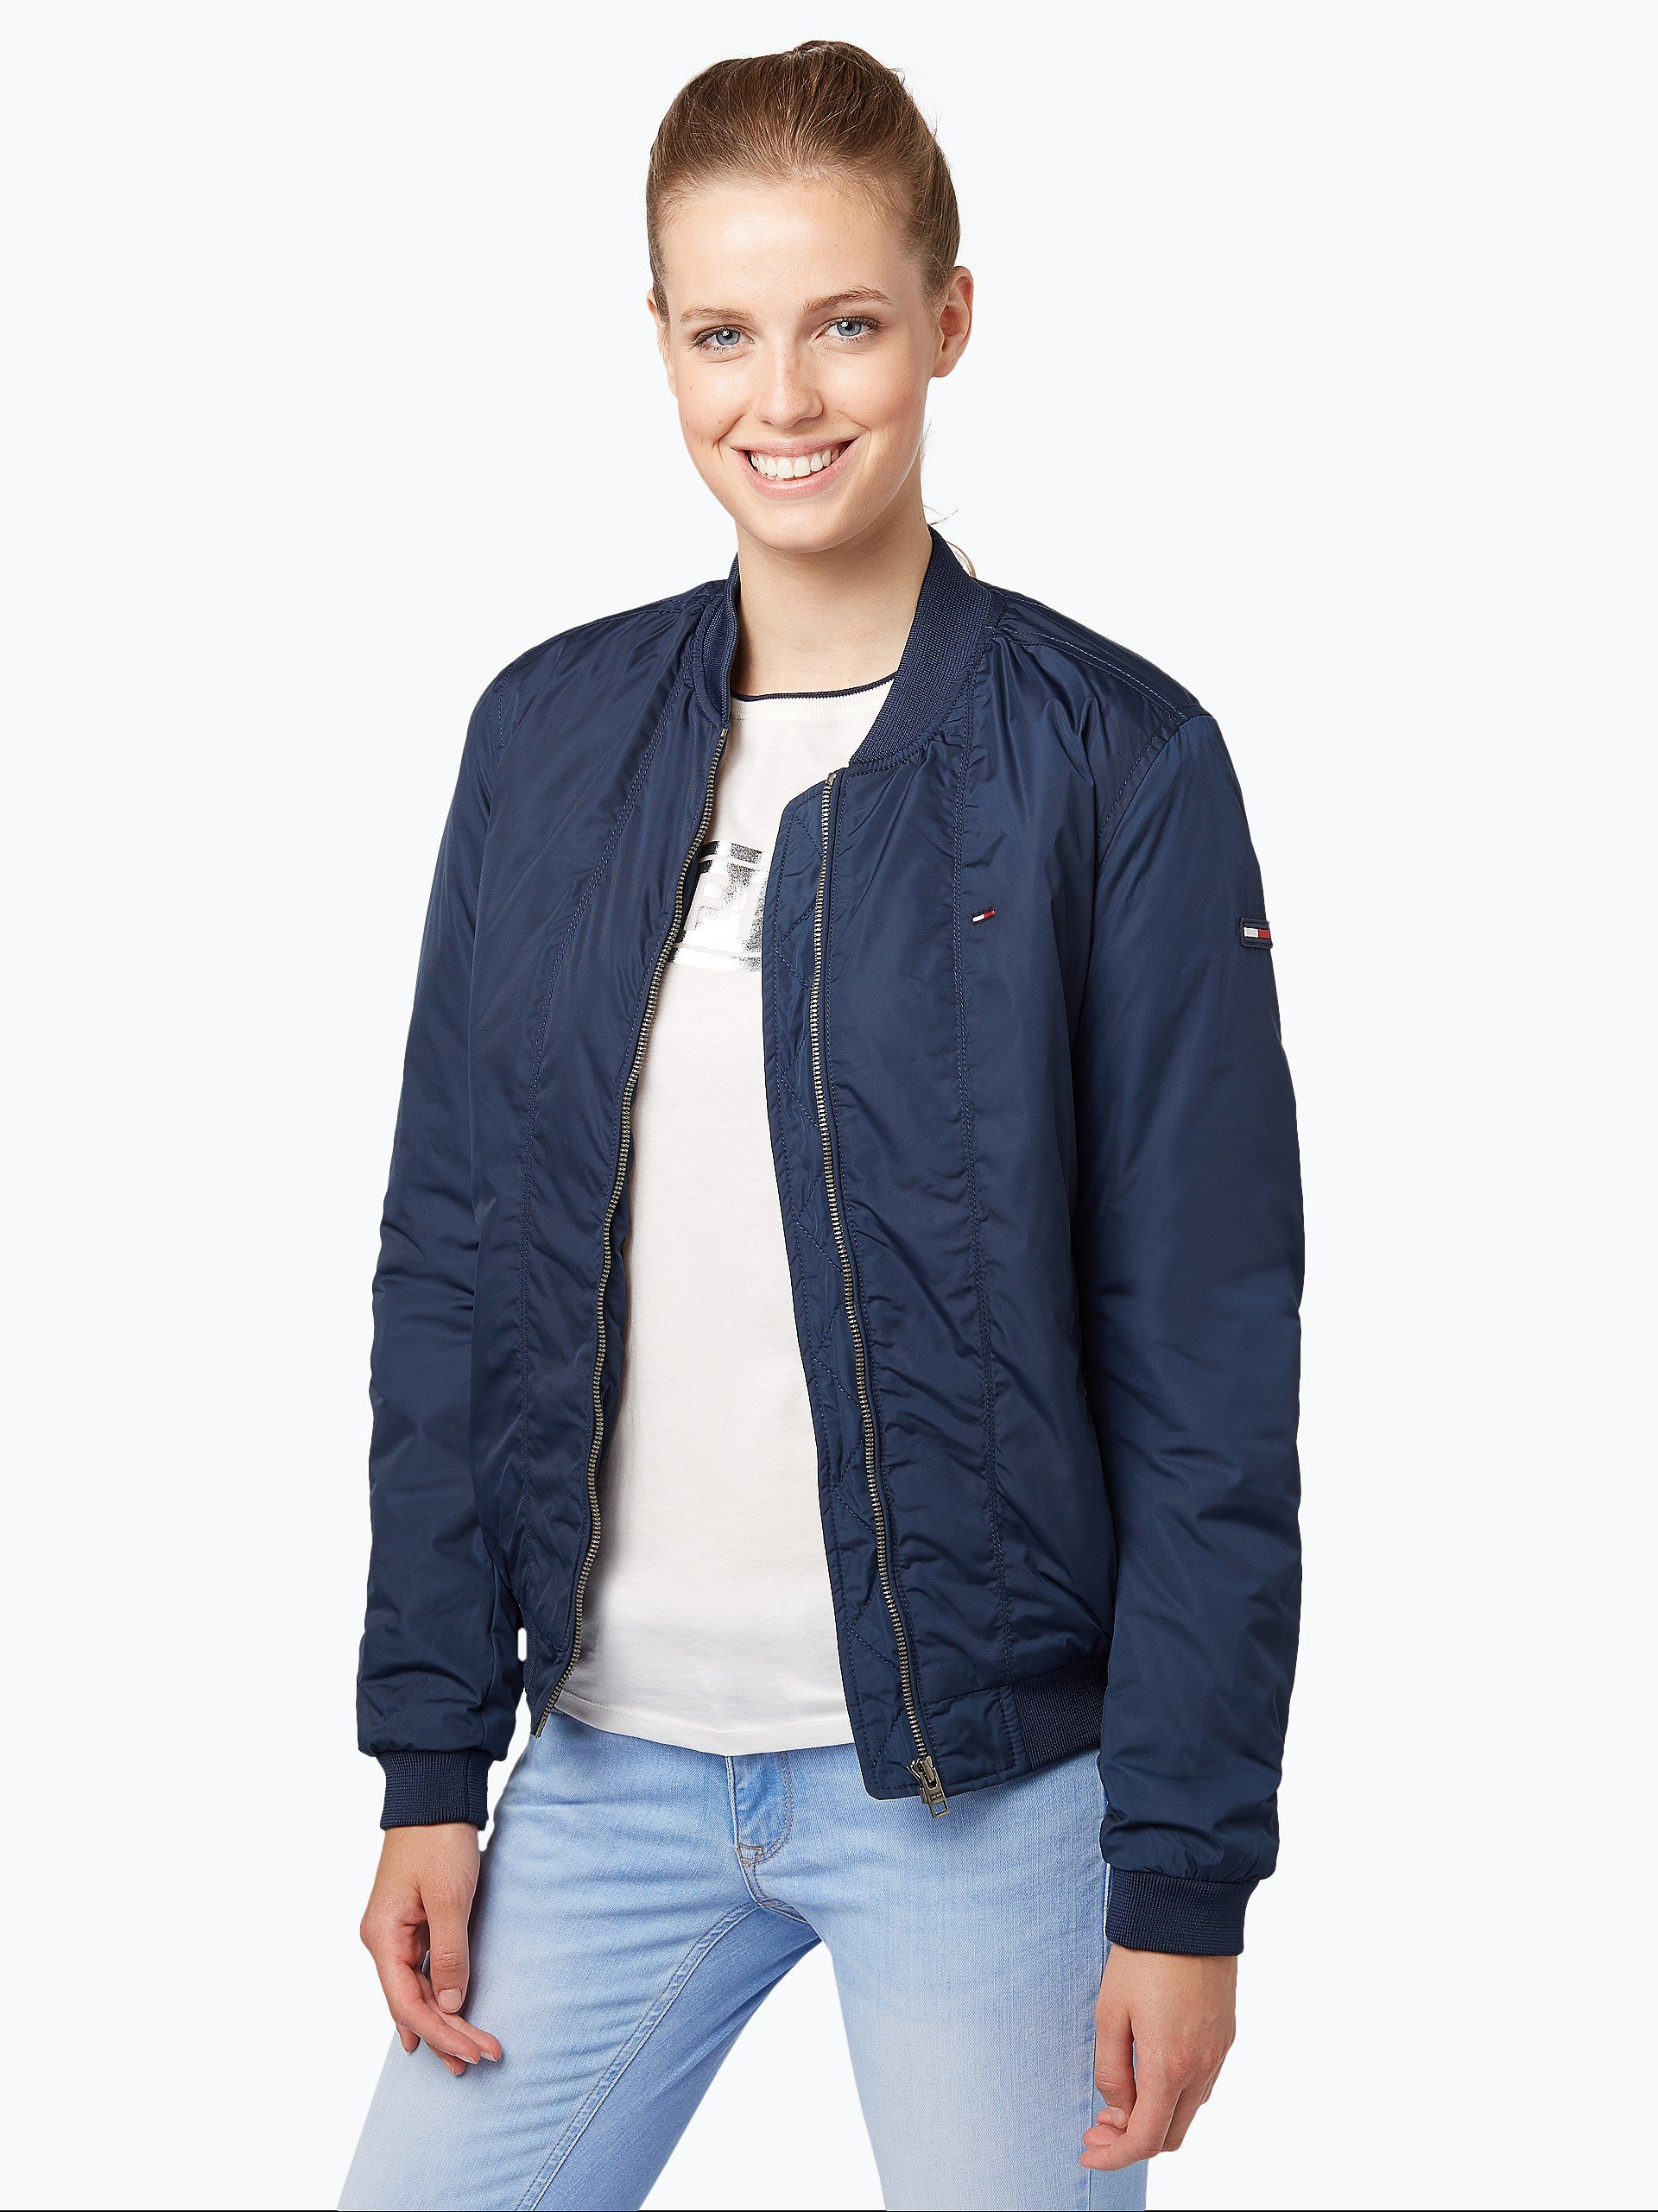 tommy jeans damen jacke marine uni online kaufen peek. Black Bedroom Furniture Sets. Home Design Ideas